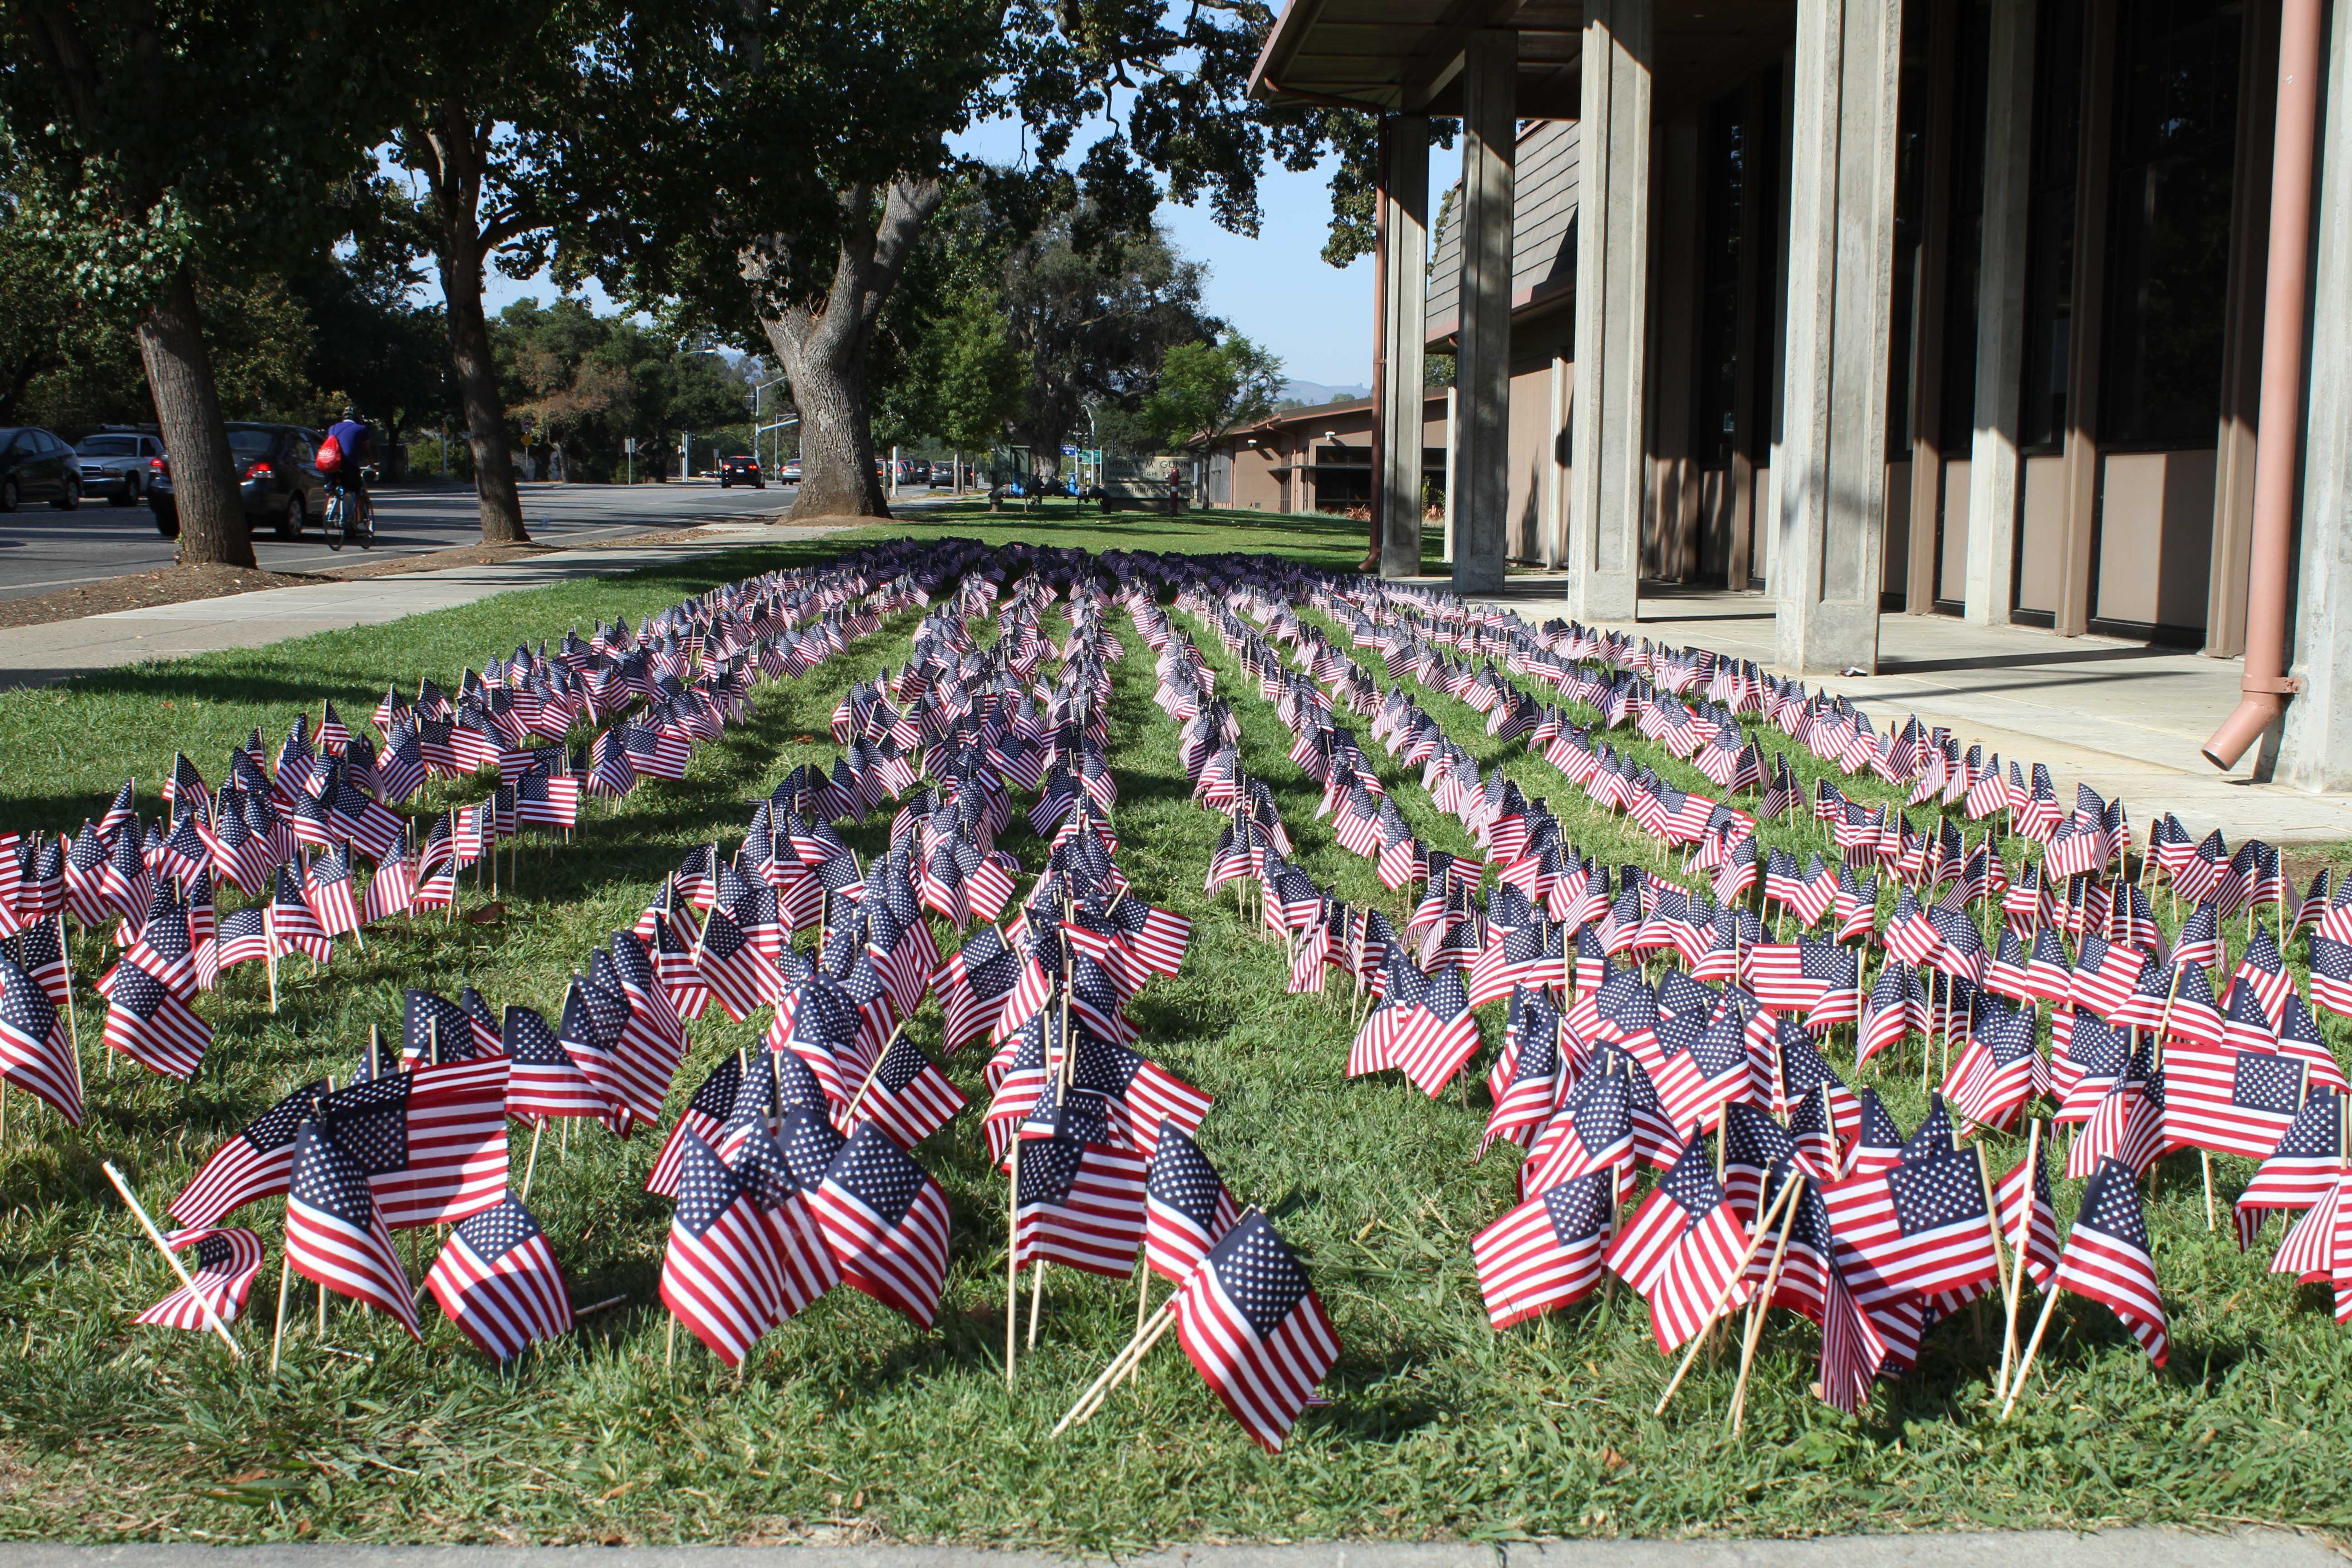 Students commemorate 9/11